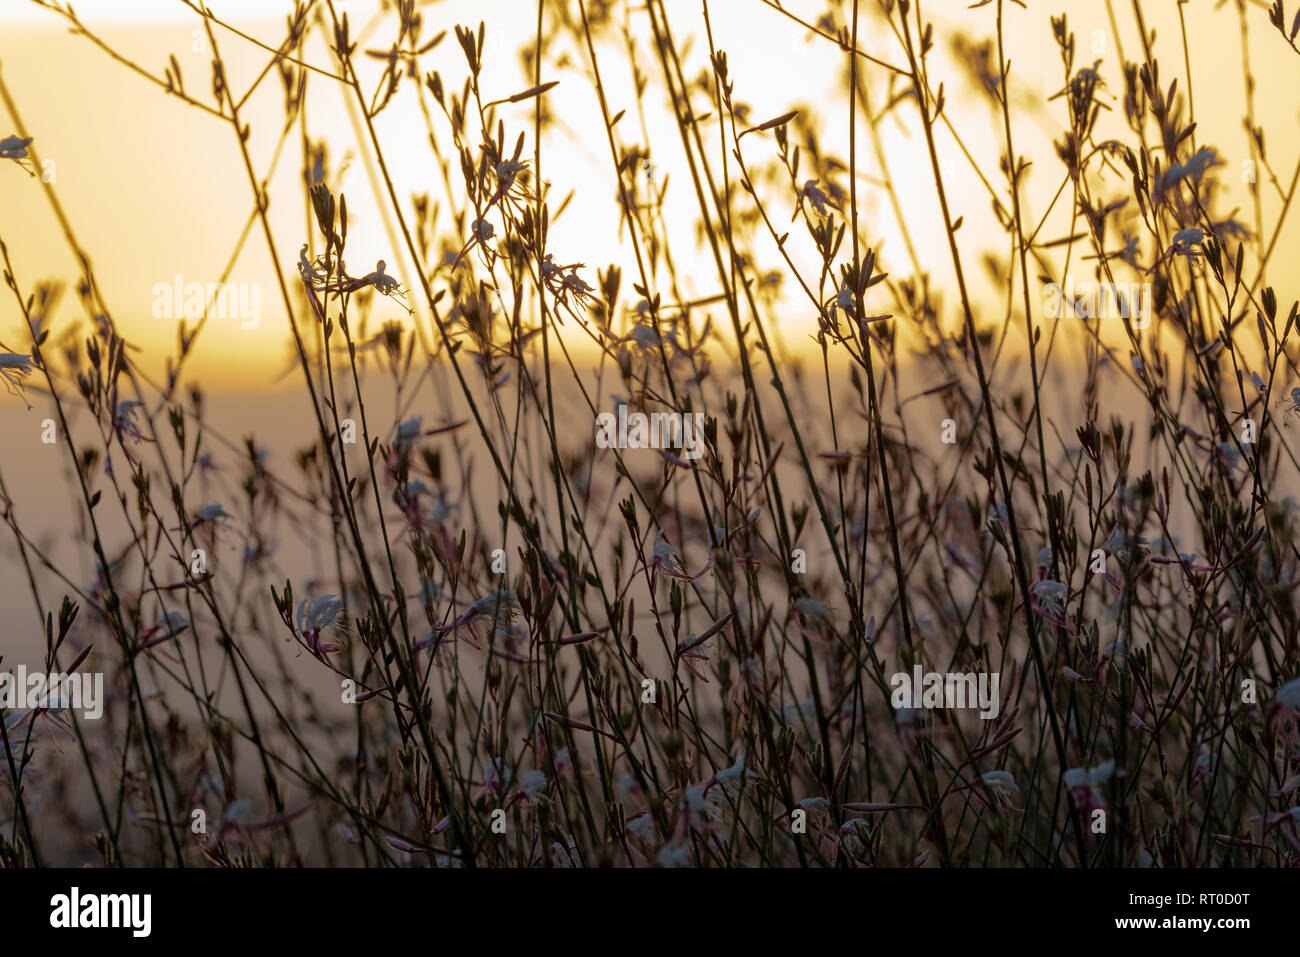 A Gaura Belleza bush silhouetted against a golden sunset. Stock Photo